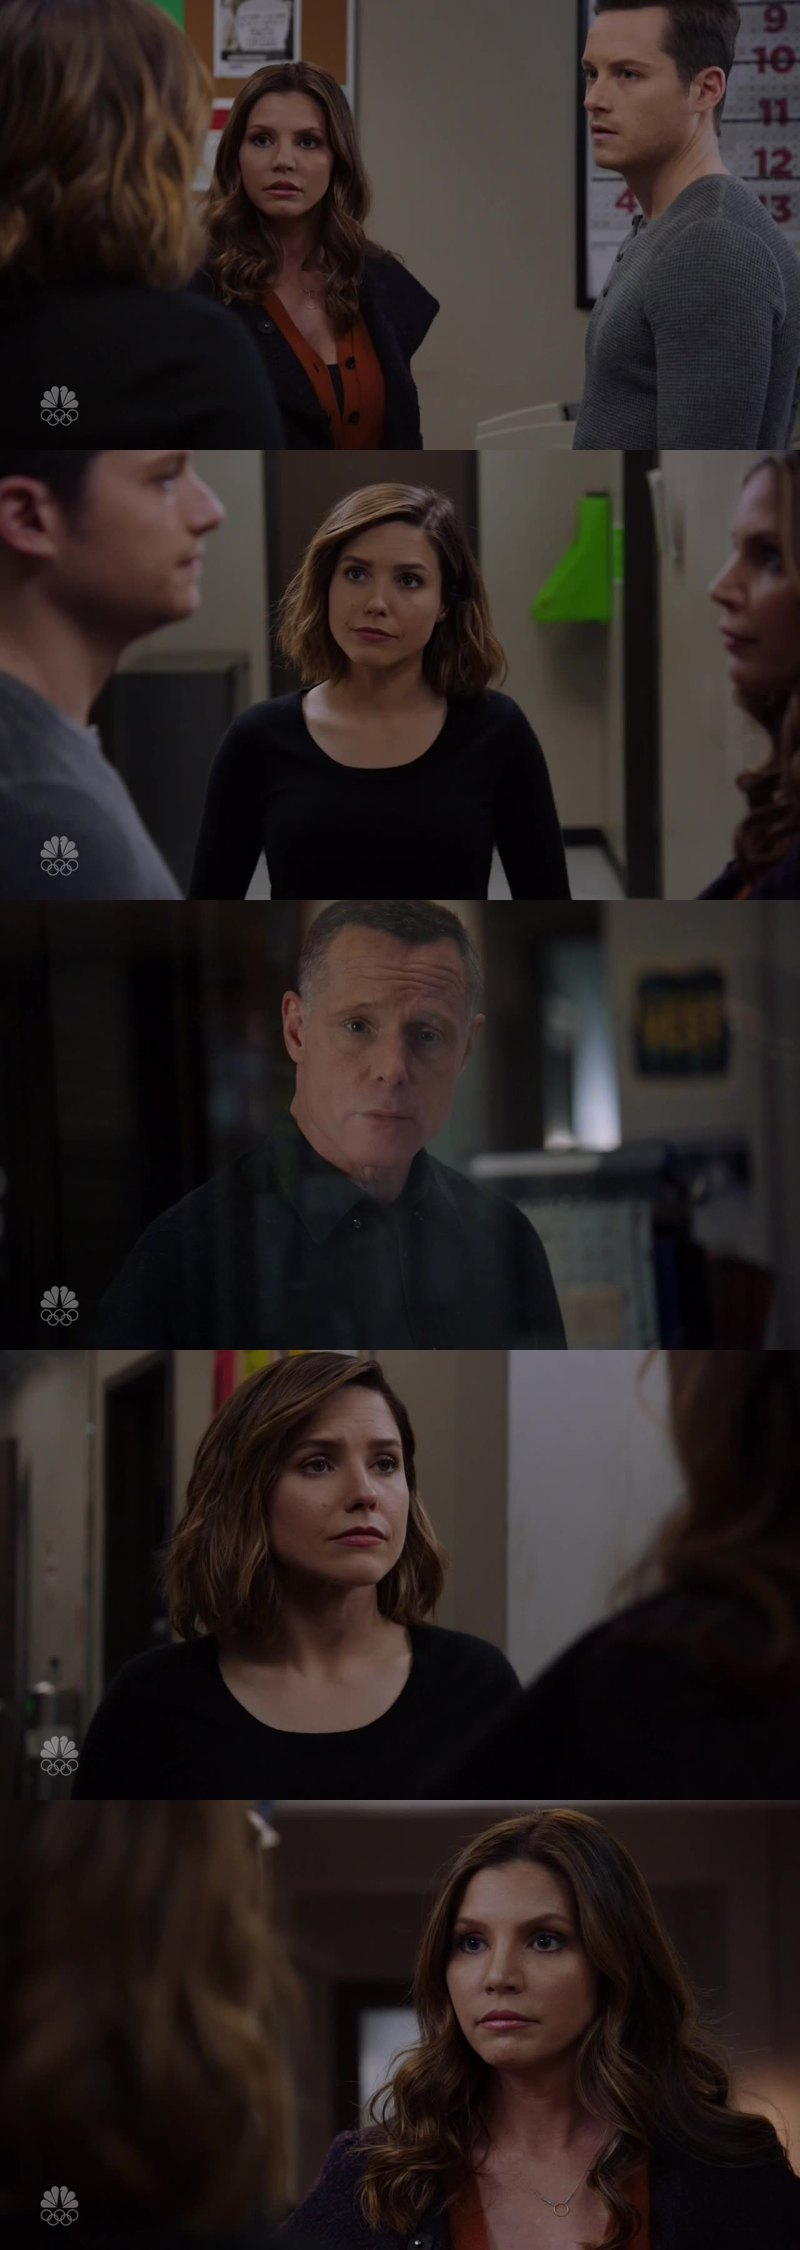 Do you see what i see? Especially when Hank asked Jay if he was sleeping with the woman. He is trying to protect Erin and Jay from this witch!! He thinks they belong together and they need eachother. #Hankgotyourbacks #lookingafteryou #babies  Bye now.